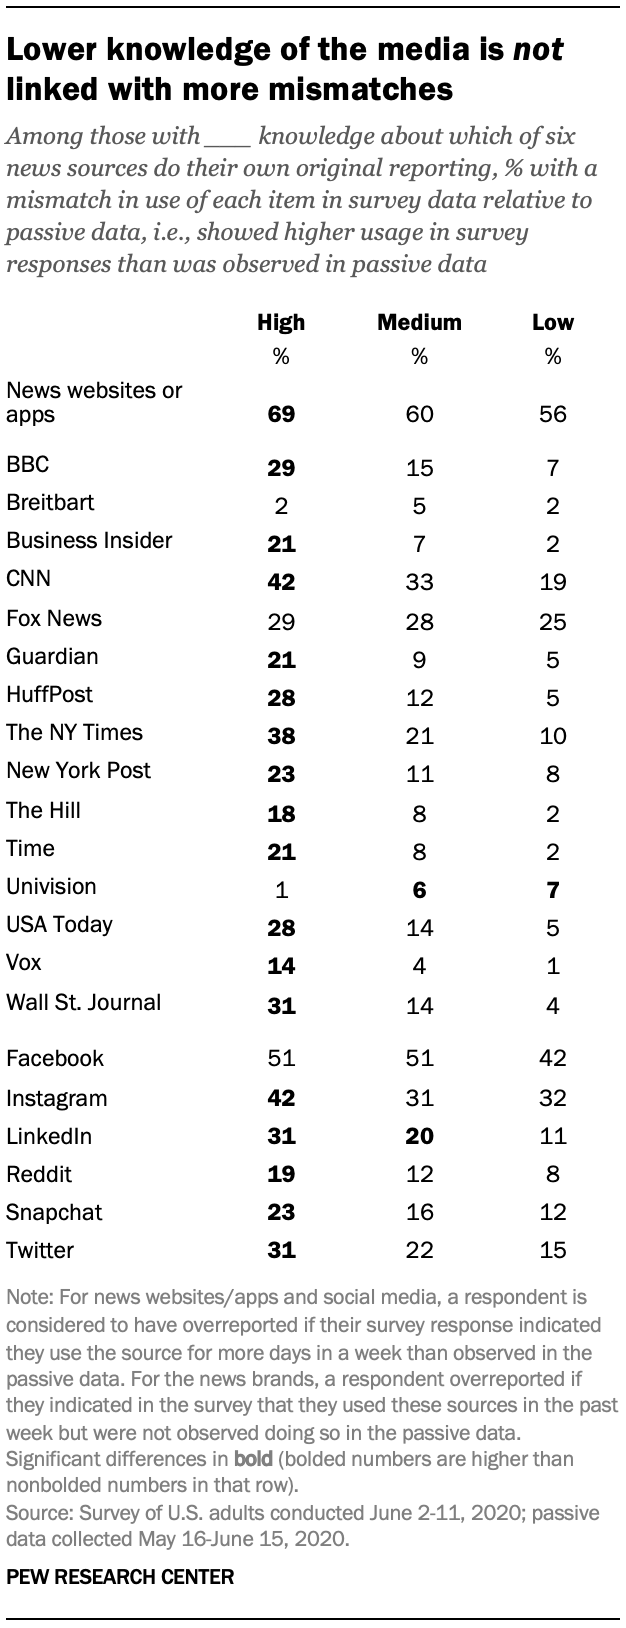 Lower knowledge of the media is not linked with more mismatches